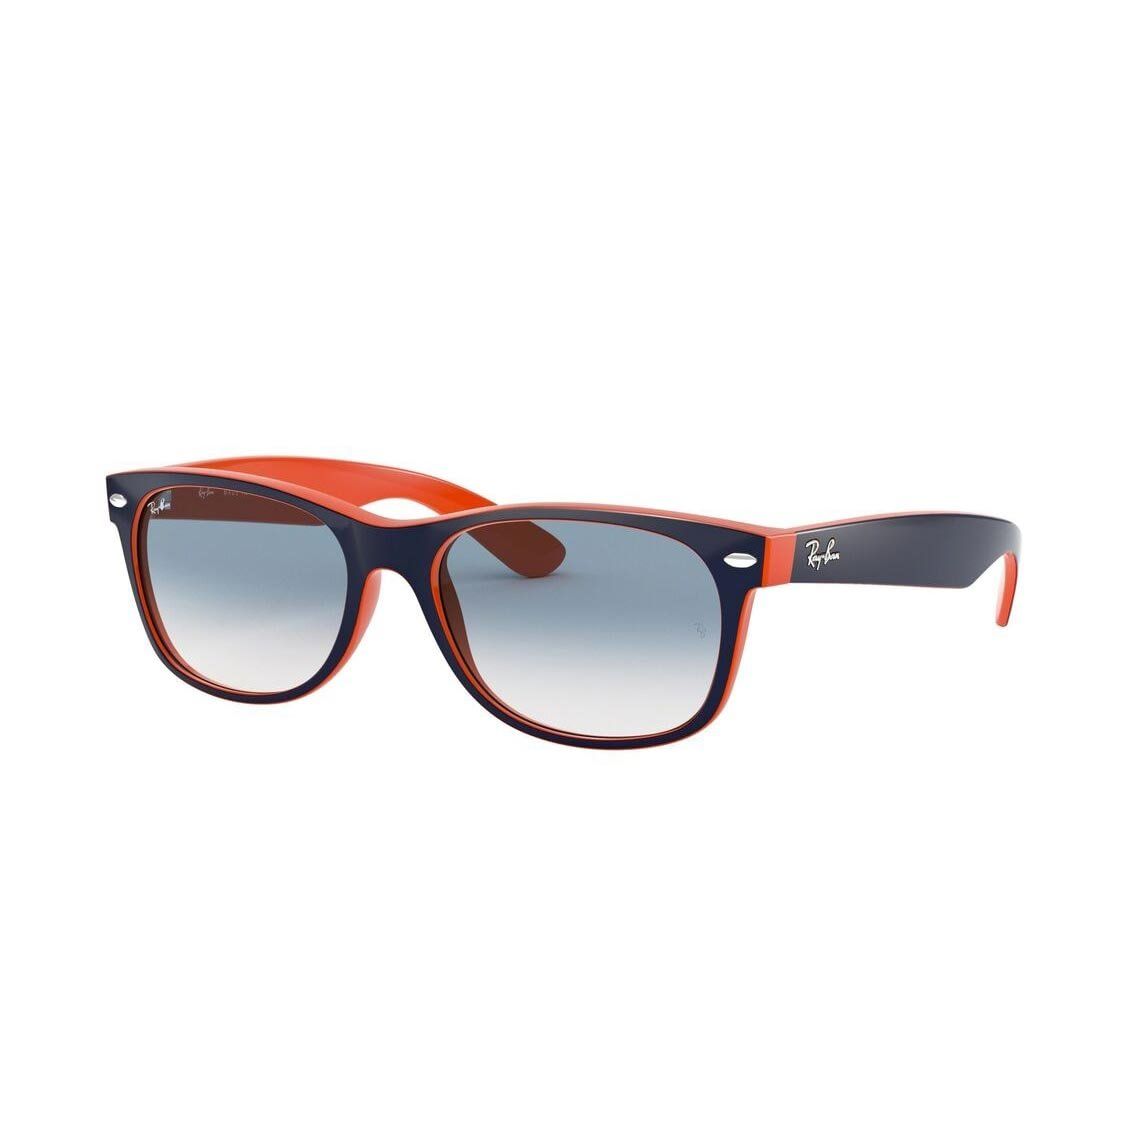 Ray-Ban New Wayfarer RB2132 789/3F 55